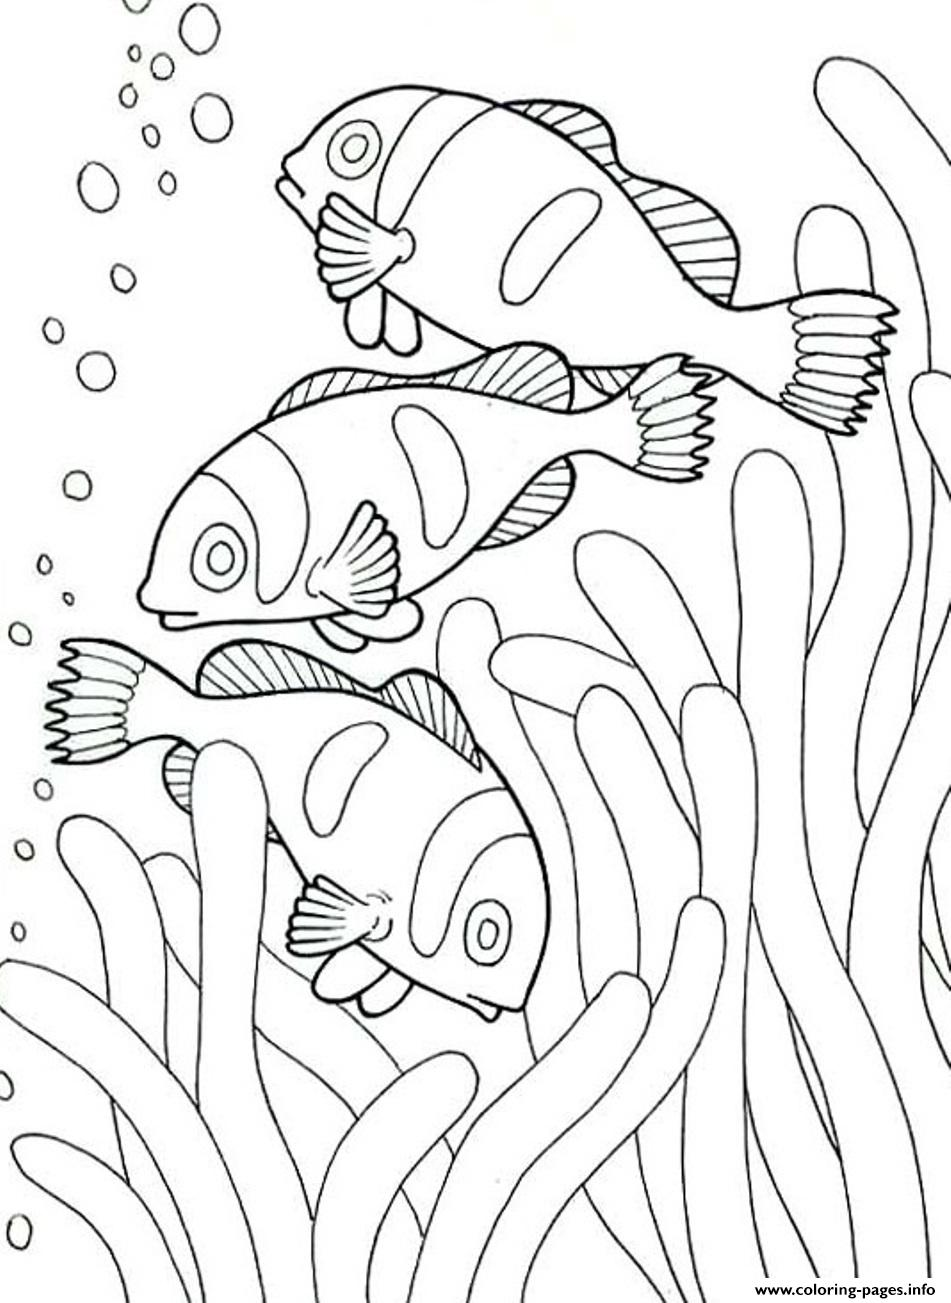 free coloring pages sea creatures - photo#21